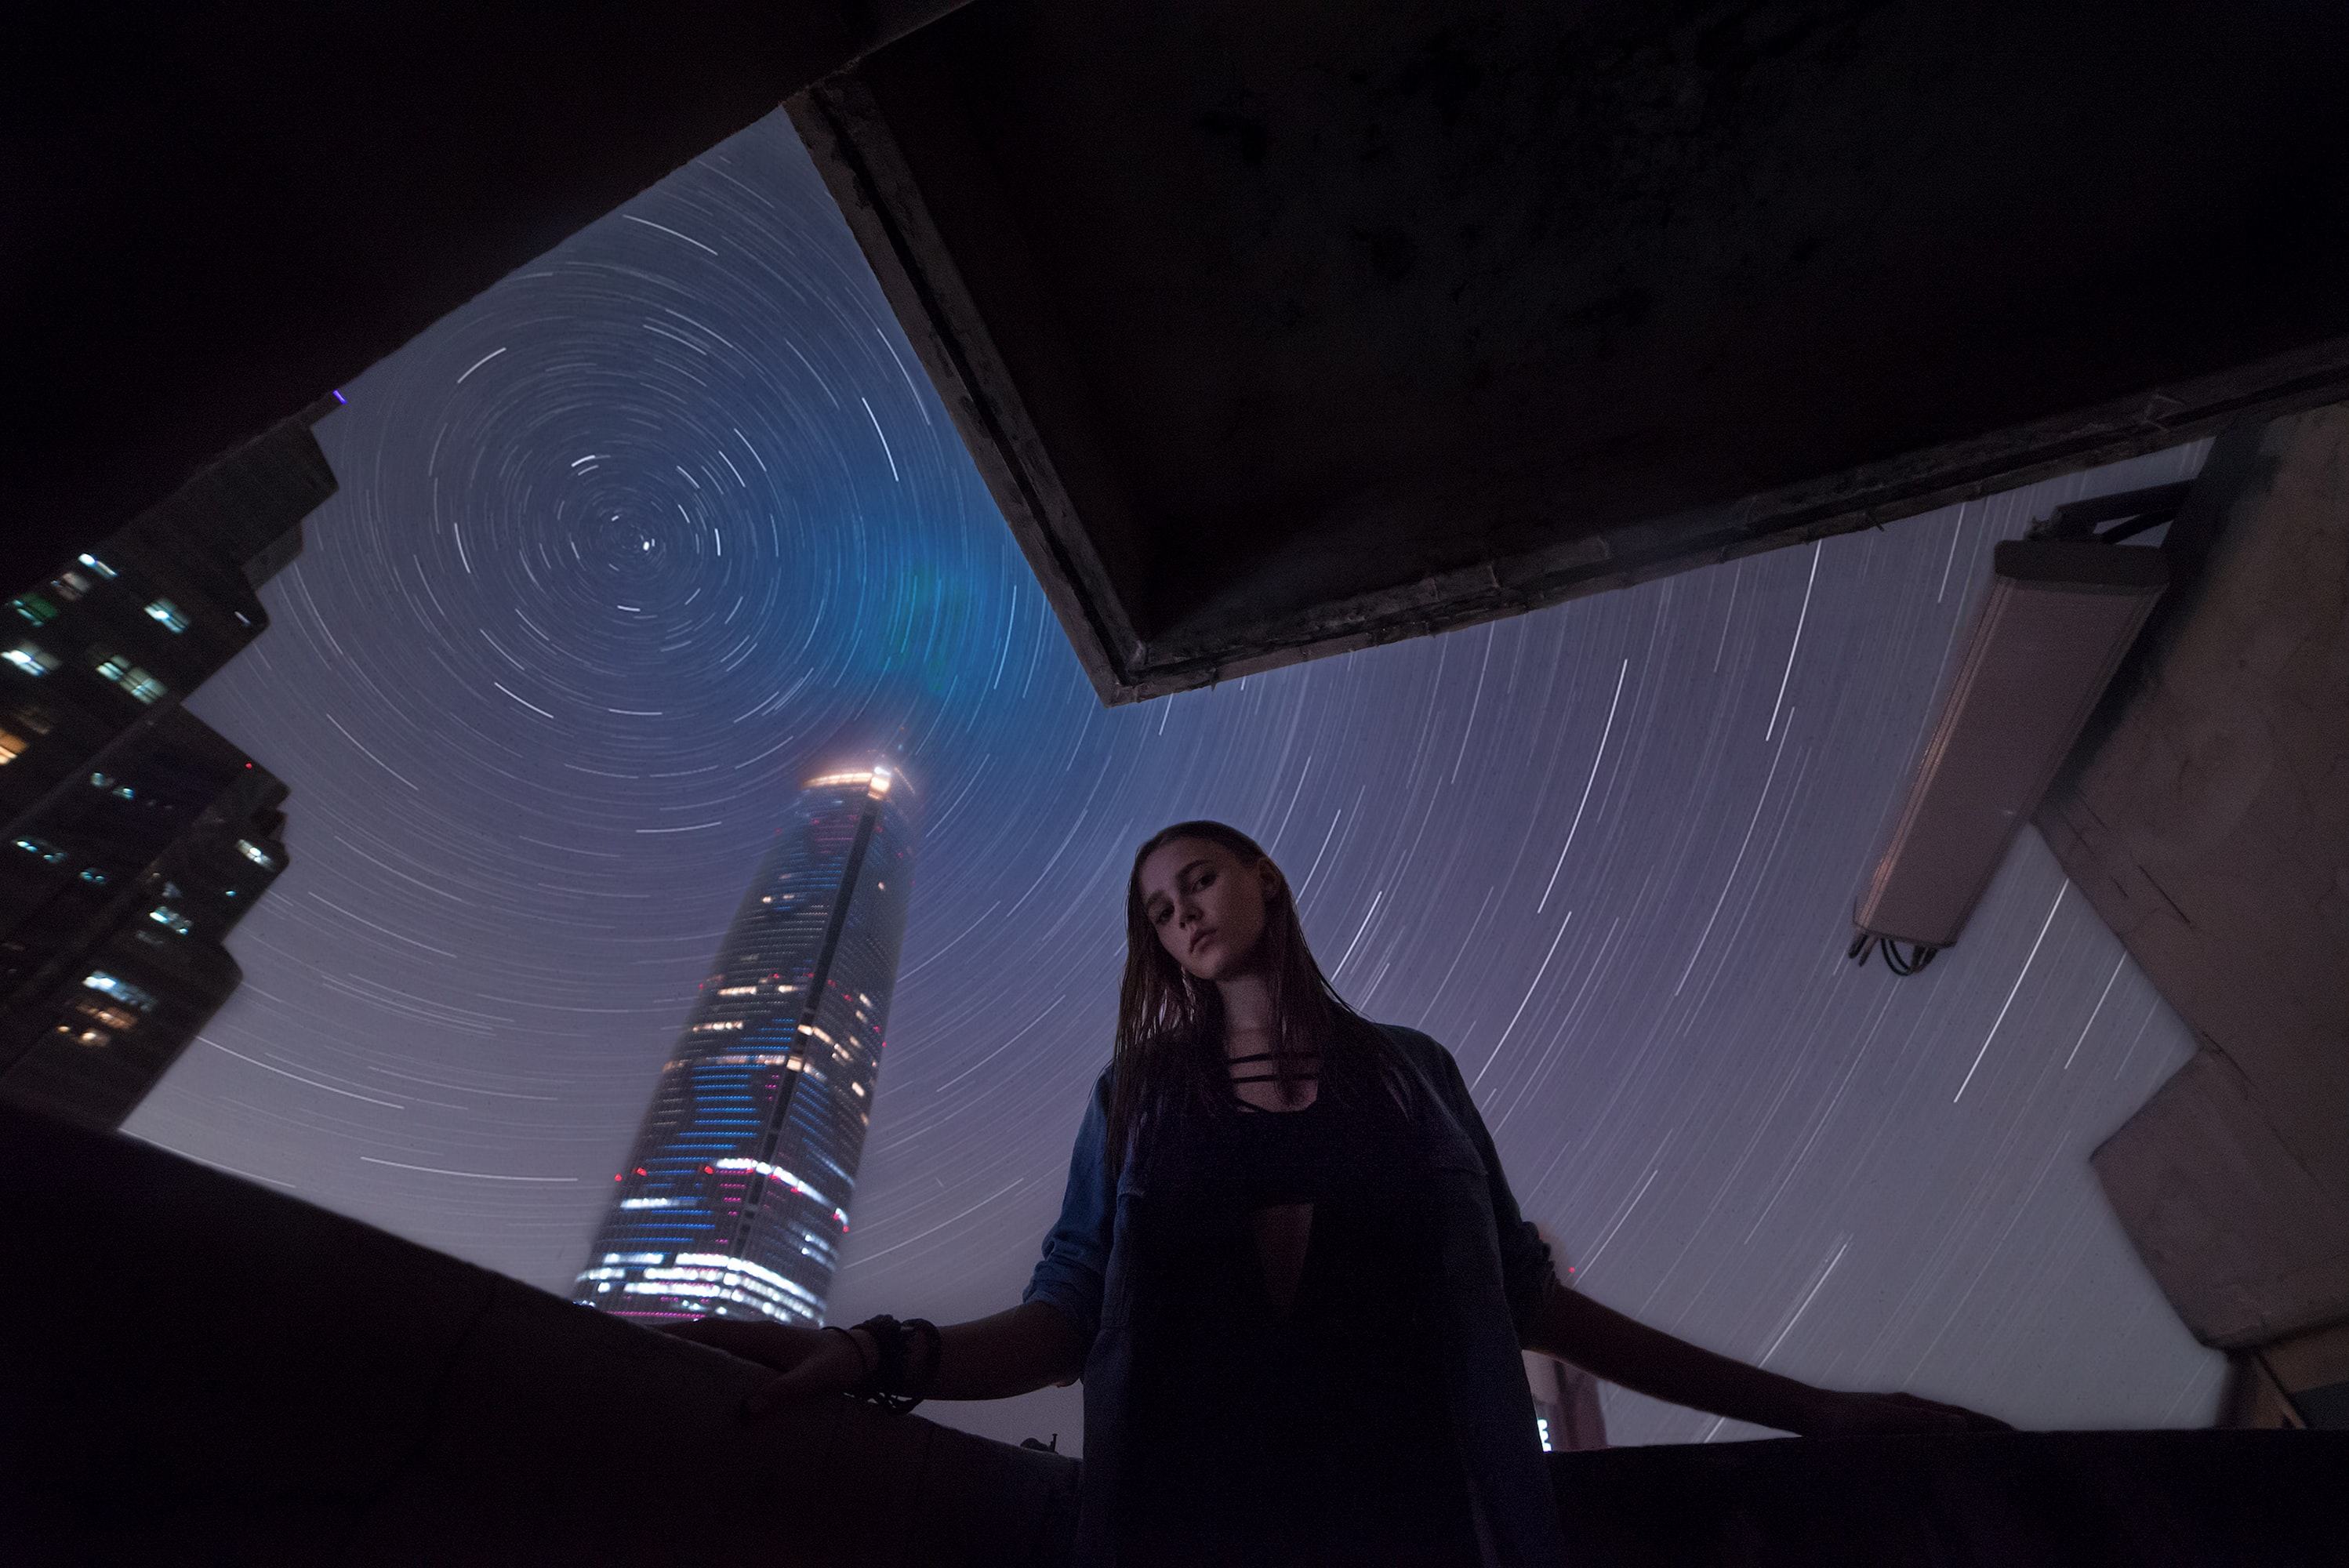 worm's-view photo of woman wearing jacket with time-lapse photo of star as background